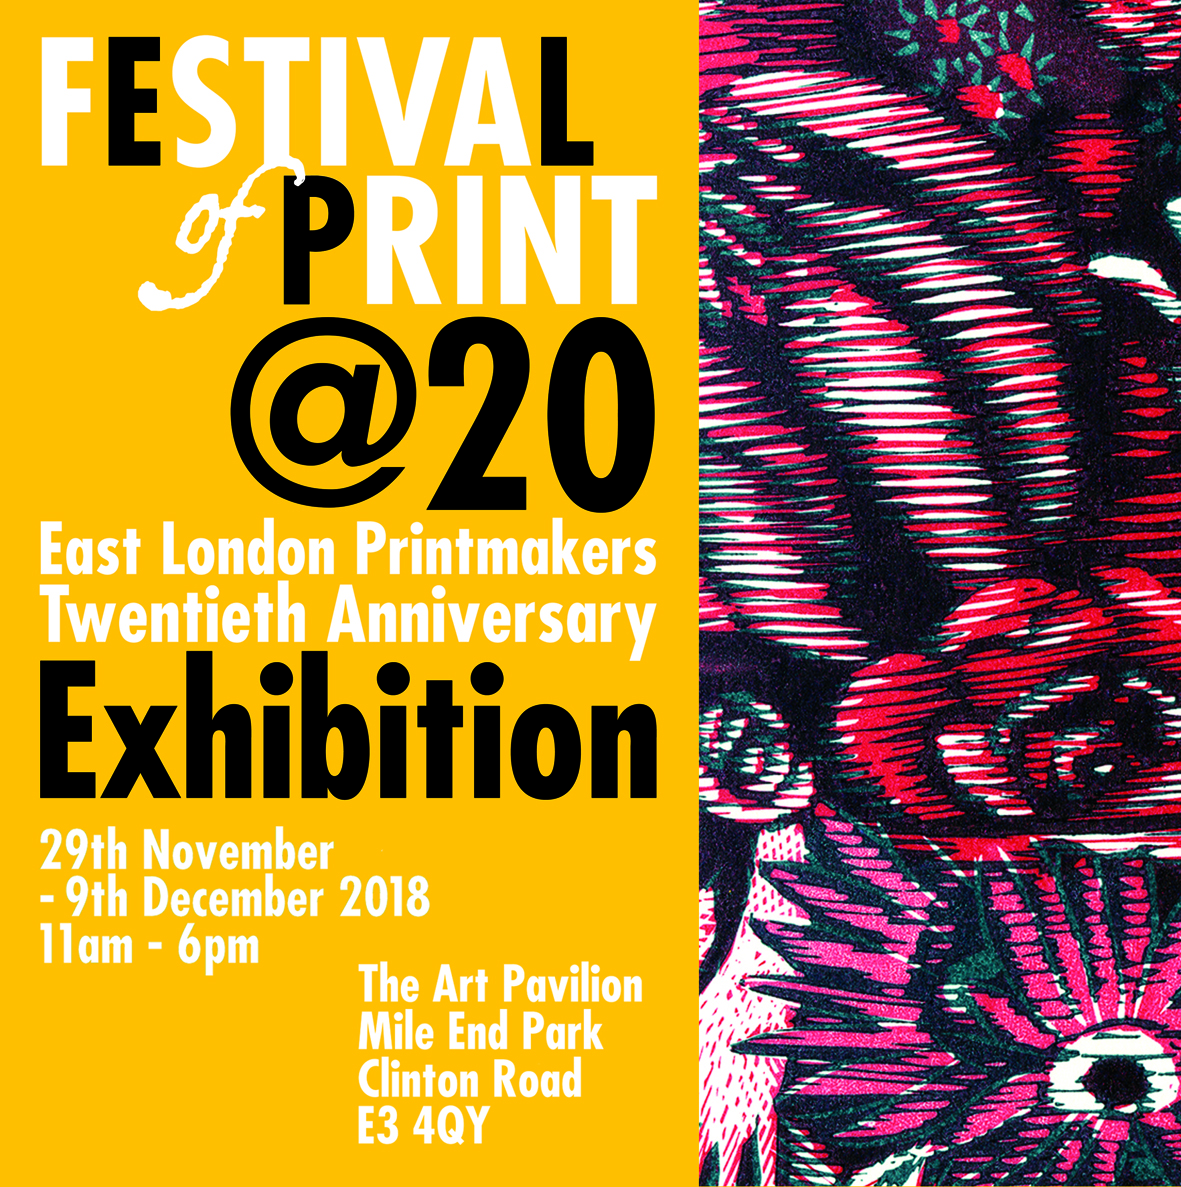 Press Release Image for ELP Festival of Print 2018 Graphics by Paul Munden and Artwork by Wuon-Gean Ho